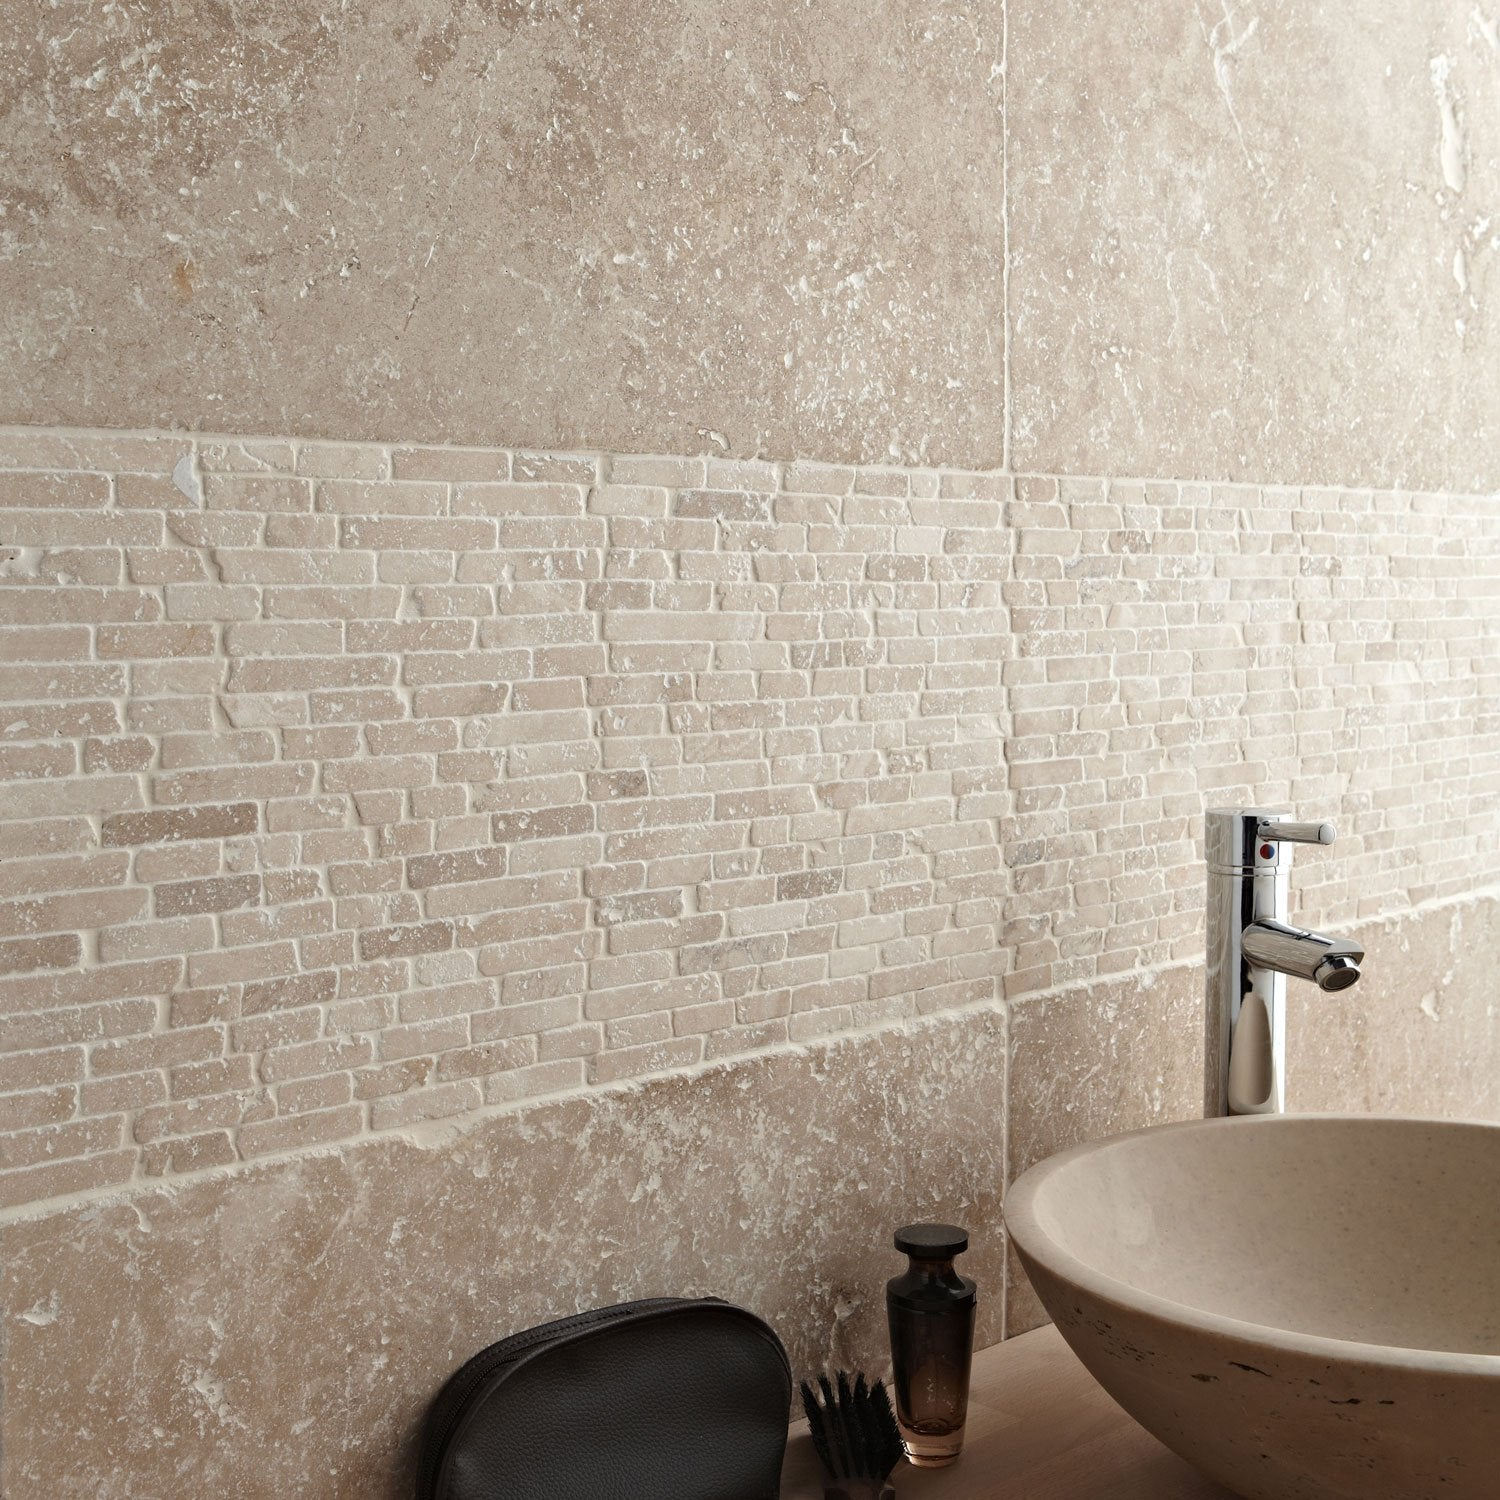 Travertin sol et mur beige effet pierre travertin x for Leroy merlin carrelage metro blanc